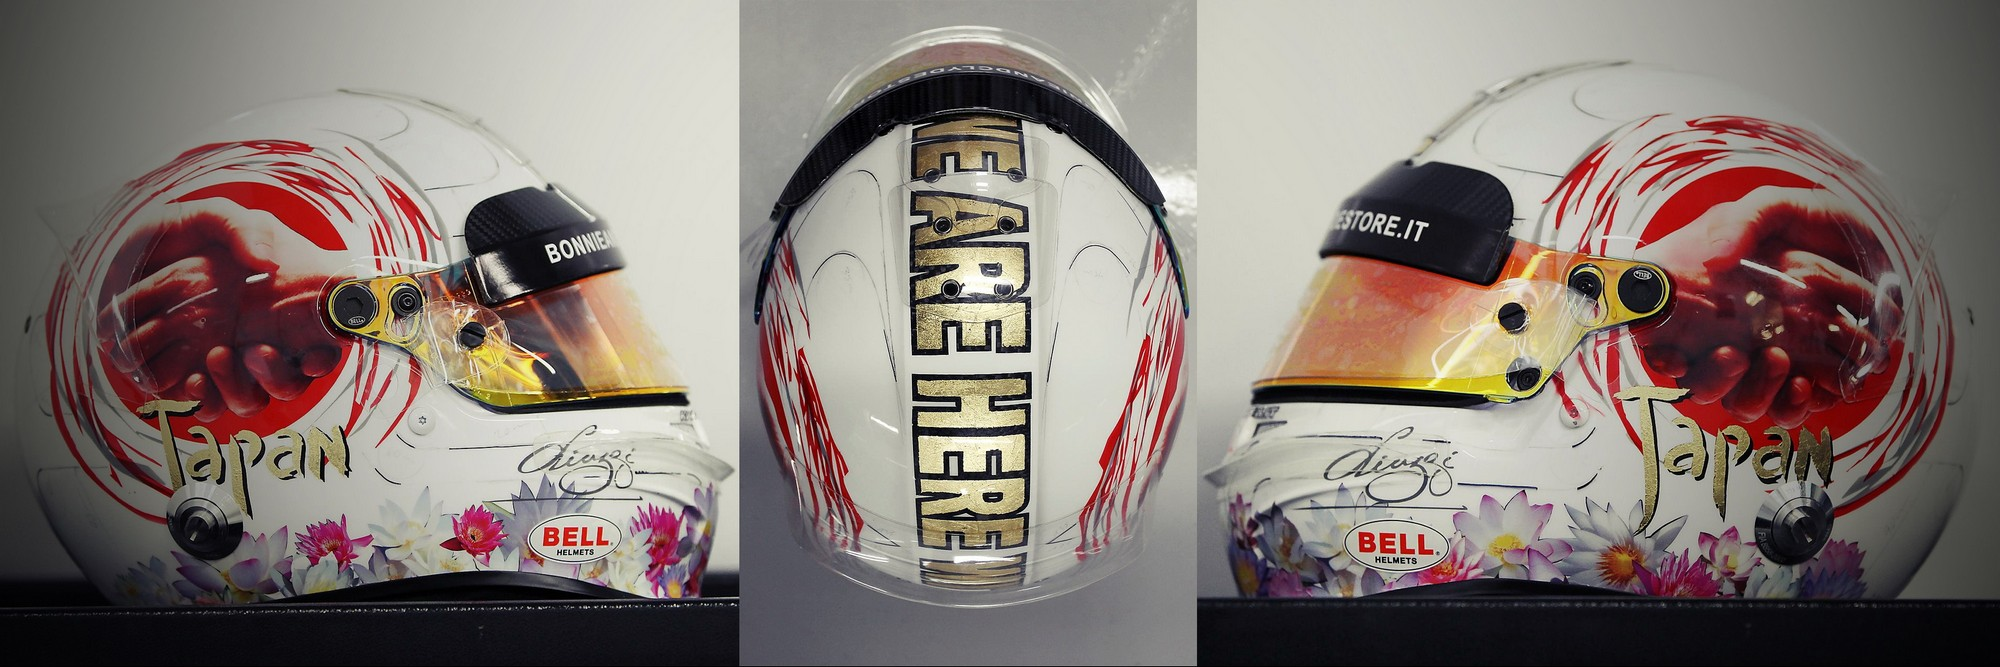 Шлем Витантонио Лиуцци на Гран-При Японии 2011 года | 2011 Japanese Grand Prix helmet of Vitantonio Liuzzi